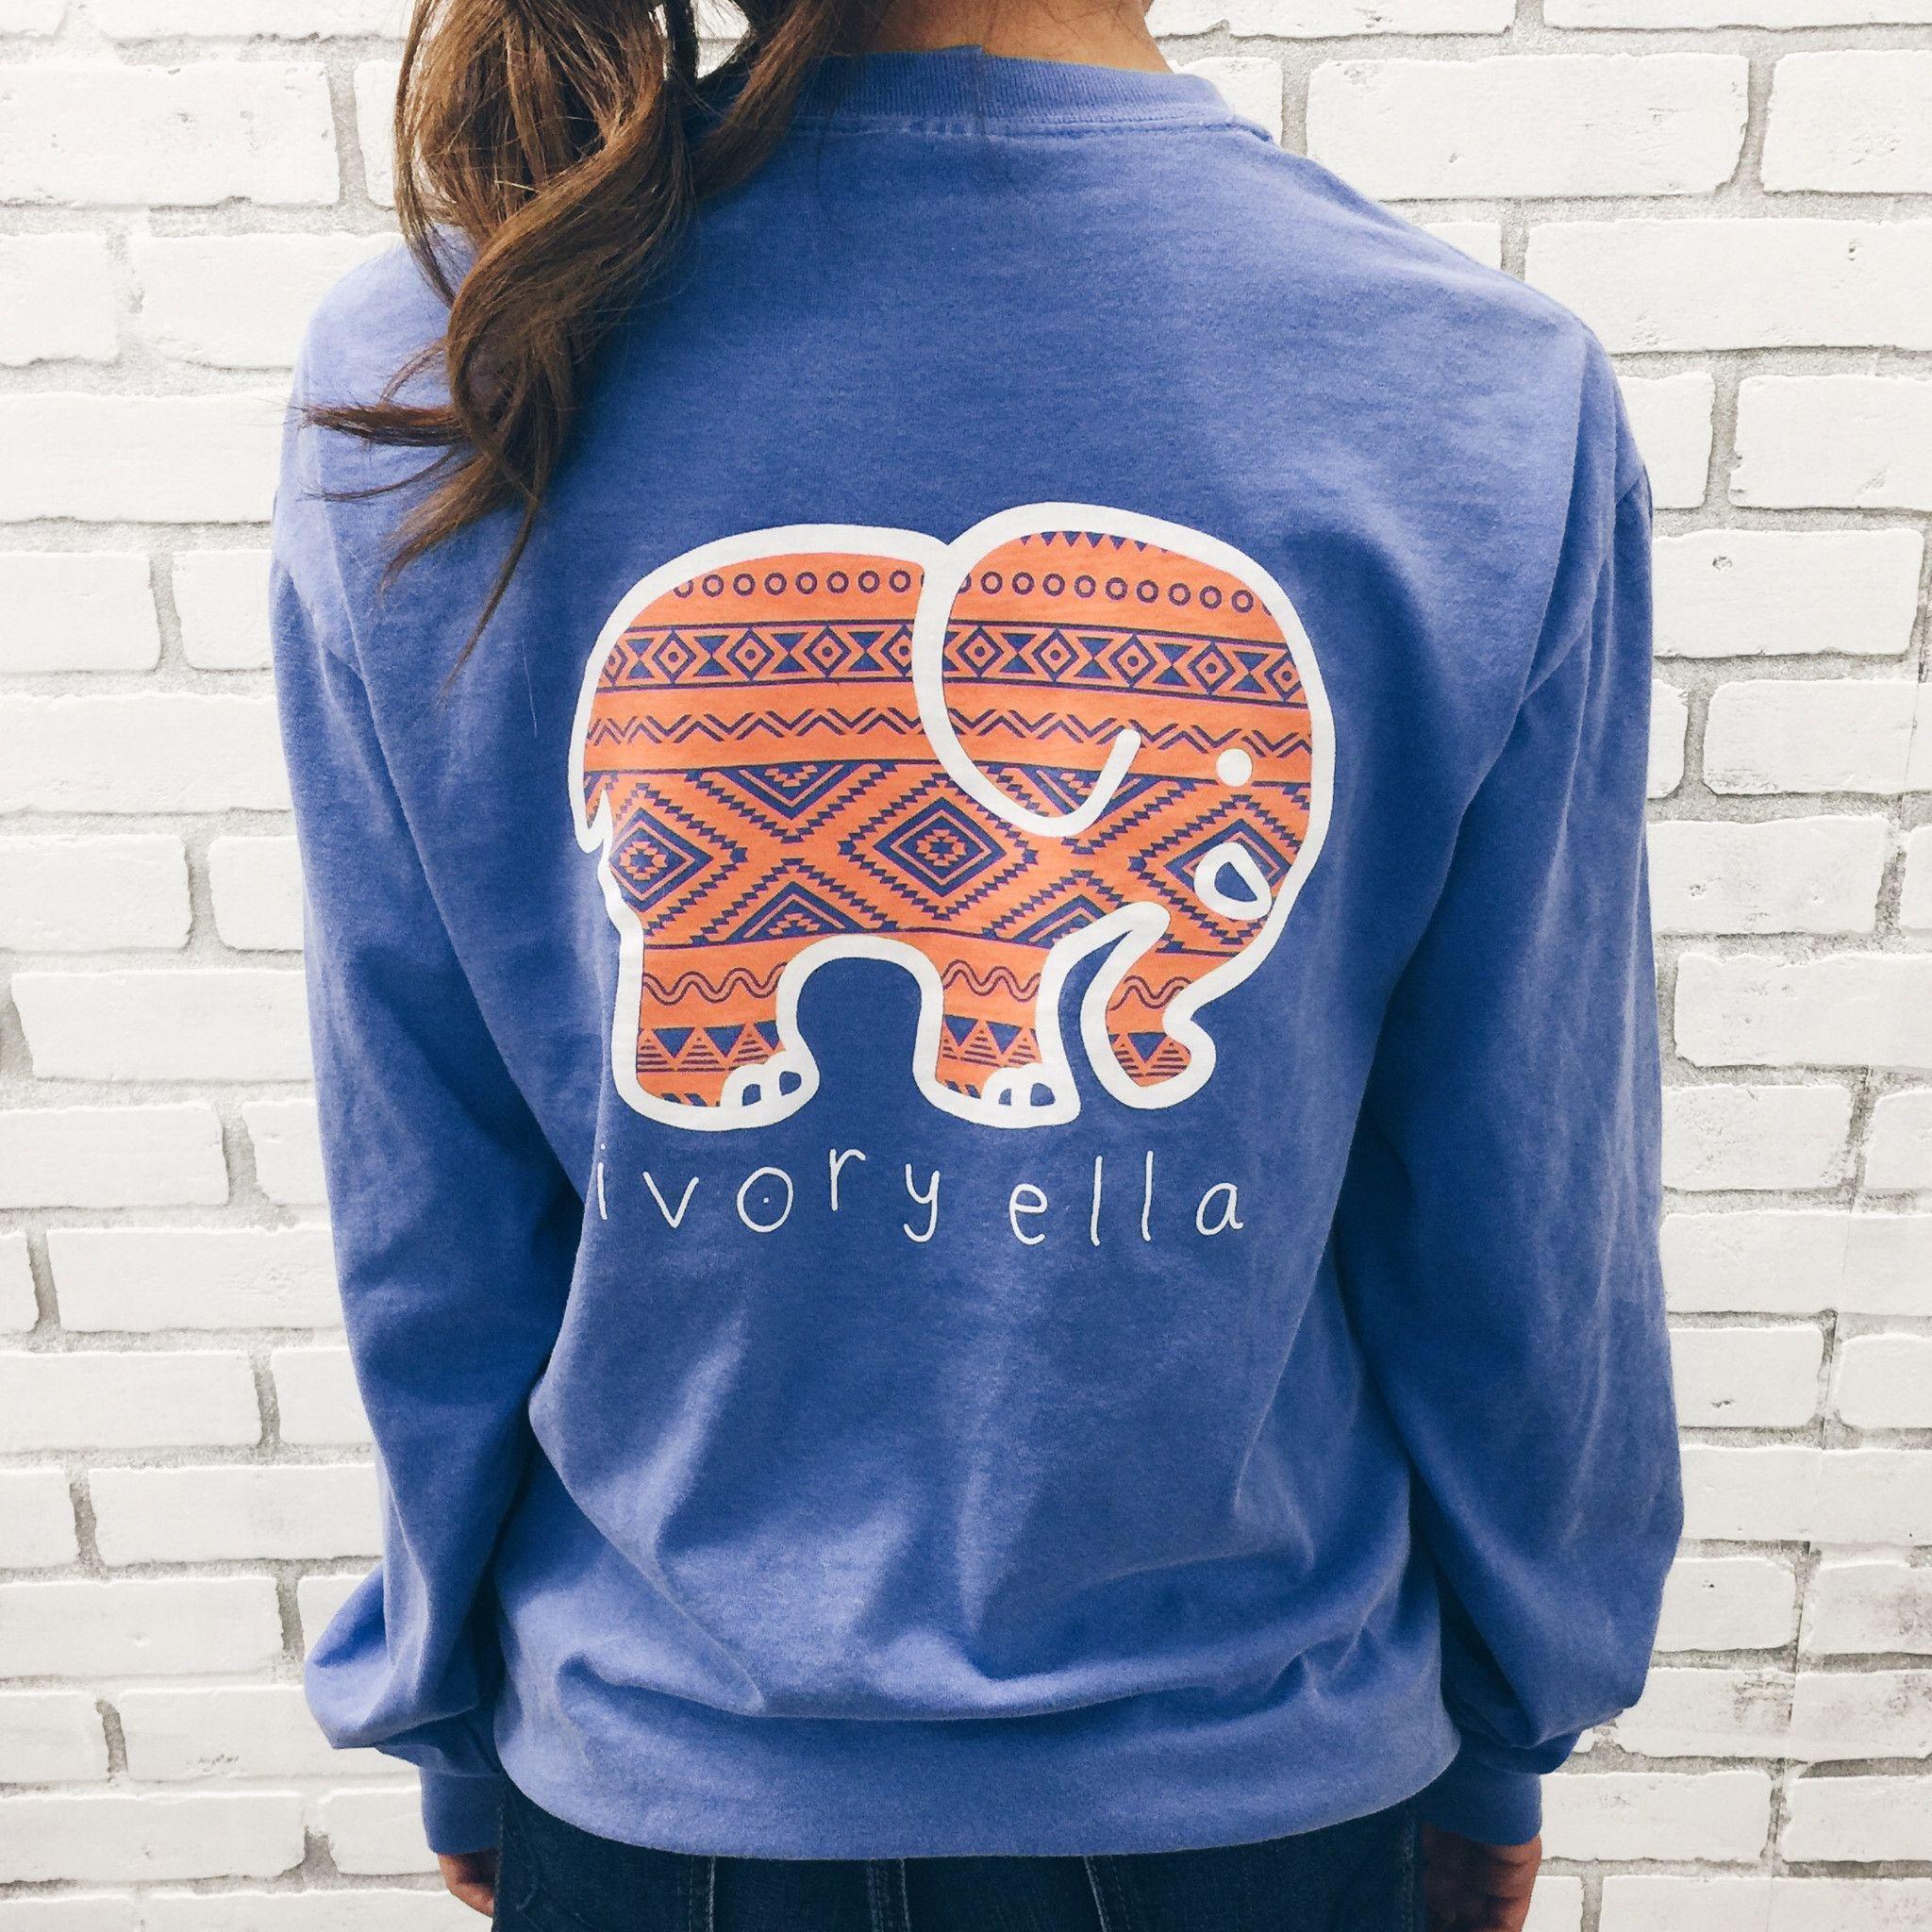 96e80fa58530 Ivory Ella Sweatshirt in this color  ) best part is a portion of every order  goes towards saving the elephants  3